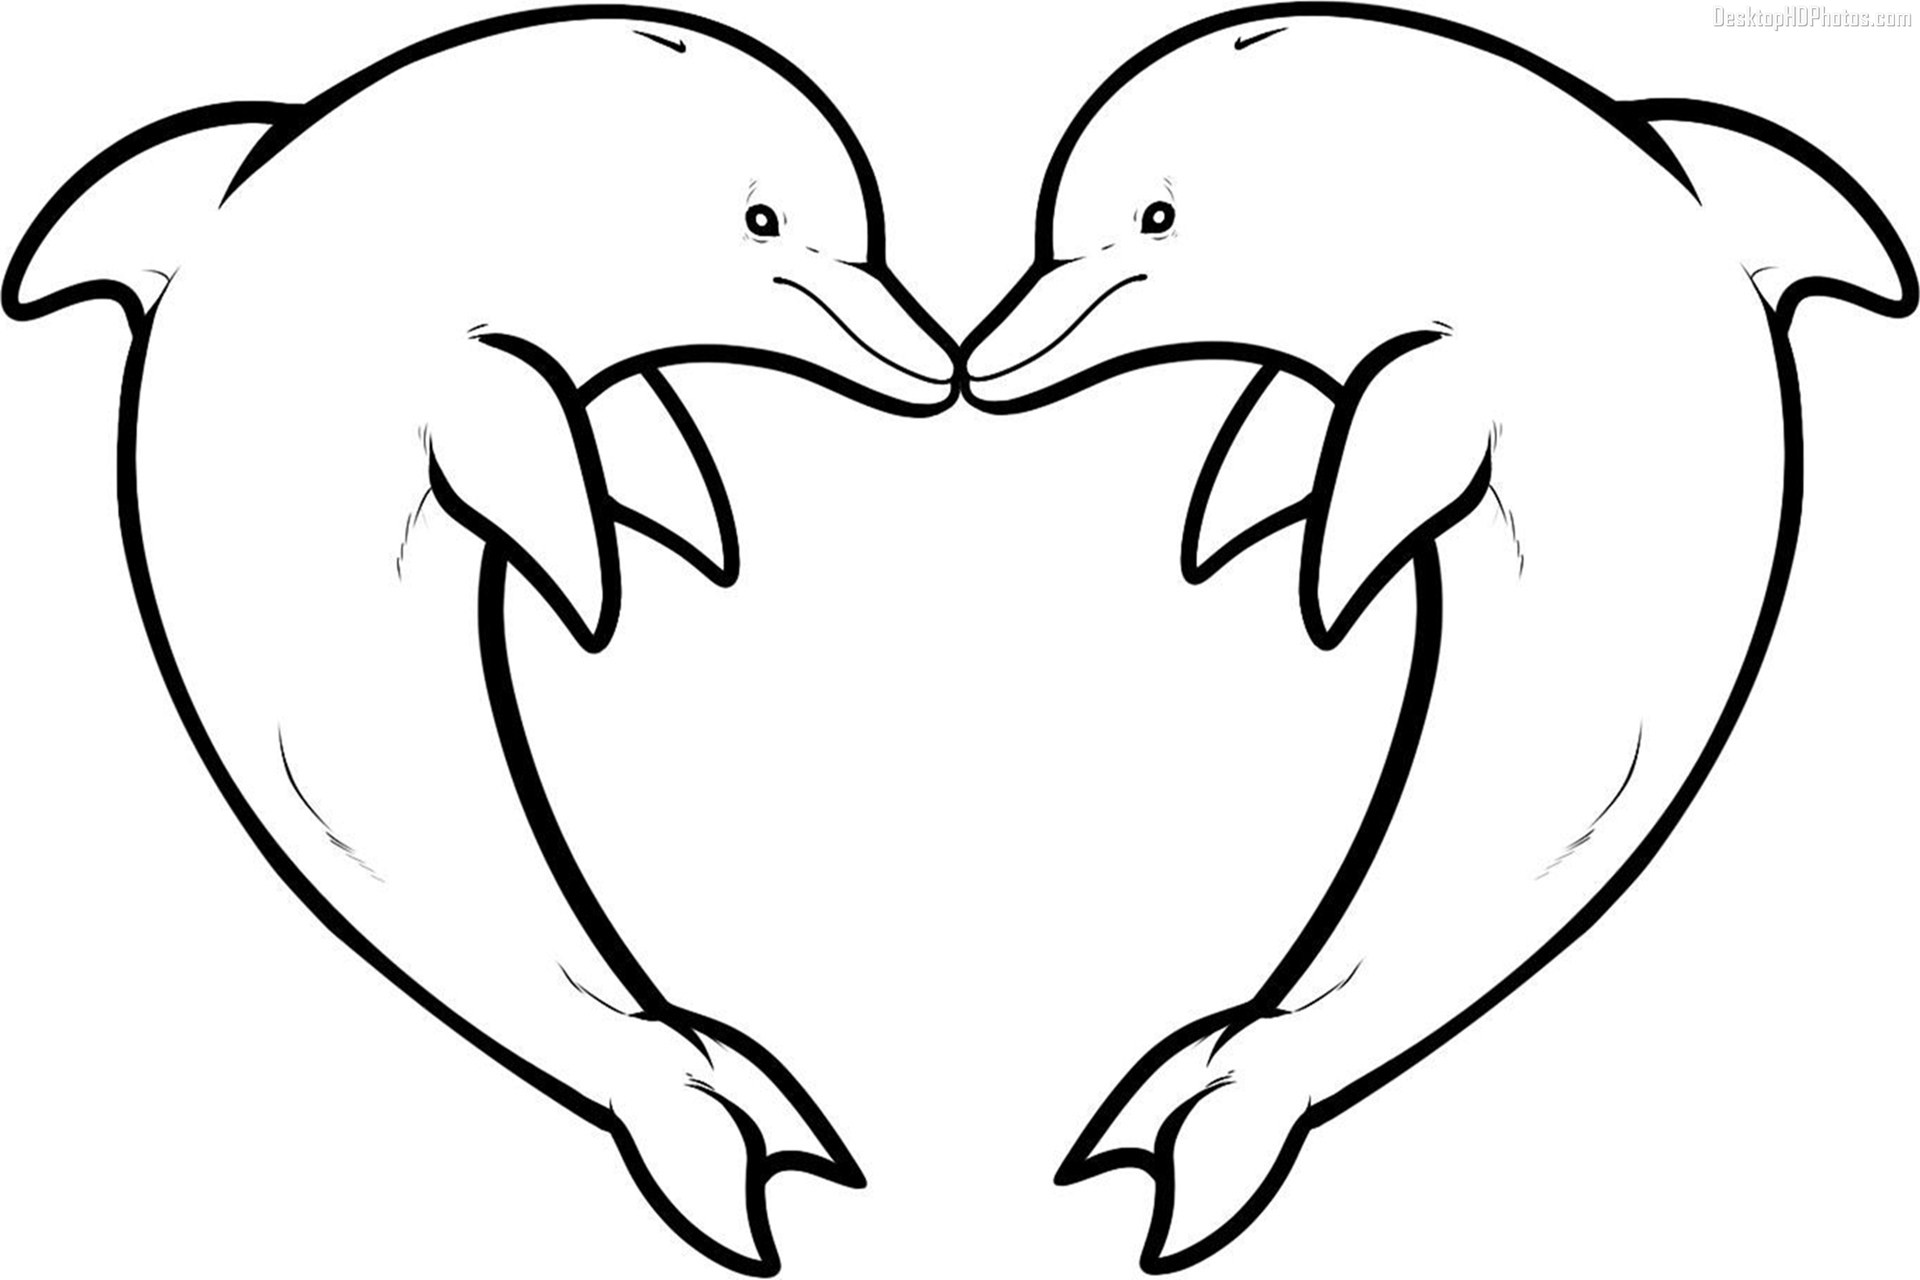 dolphin coloring printables free printable dolphin coloring pages for kids coloring printables dolphin